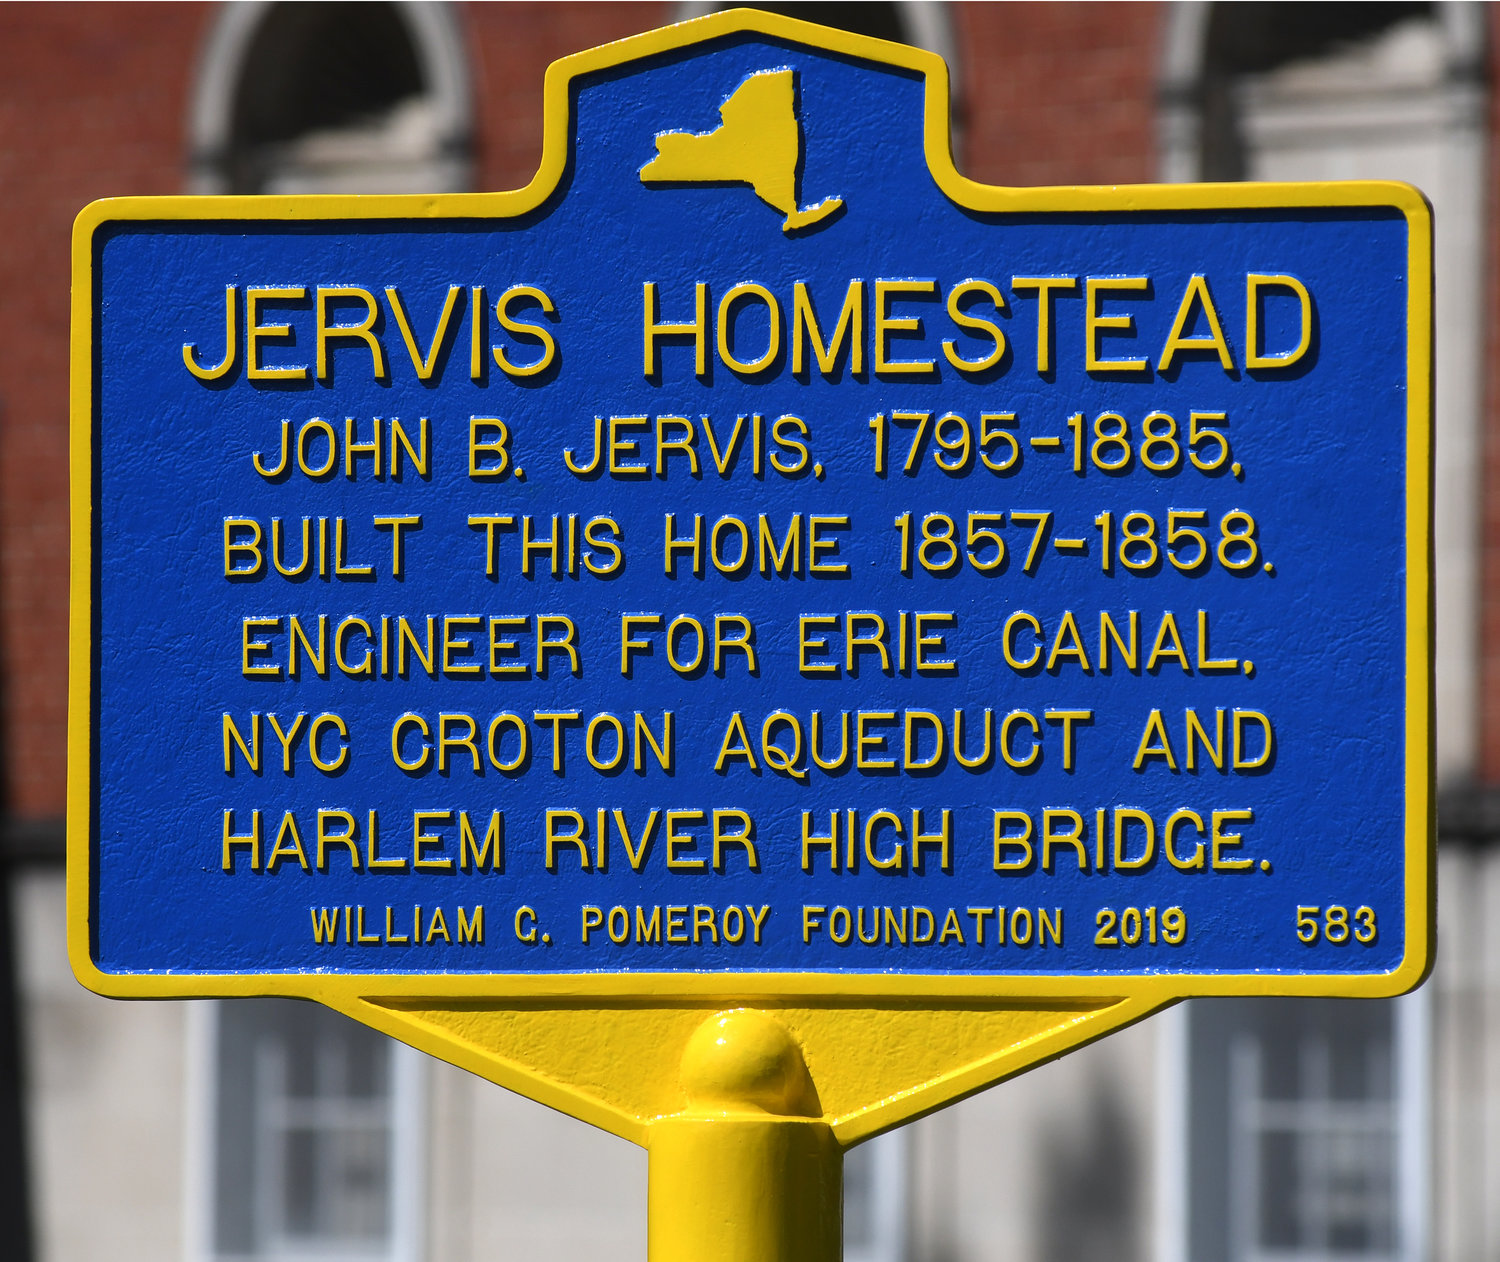 HONORING JERVIS — The Jervis Homestead marker that is new after the old one was destroyed by a fallen tree limb.